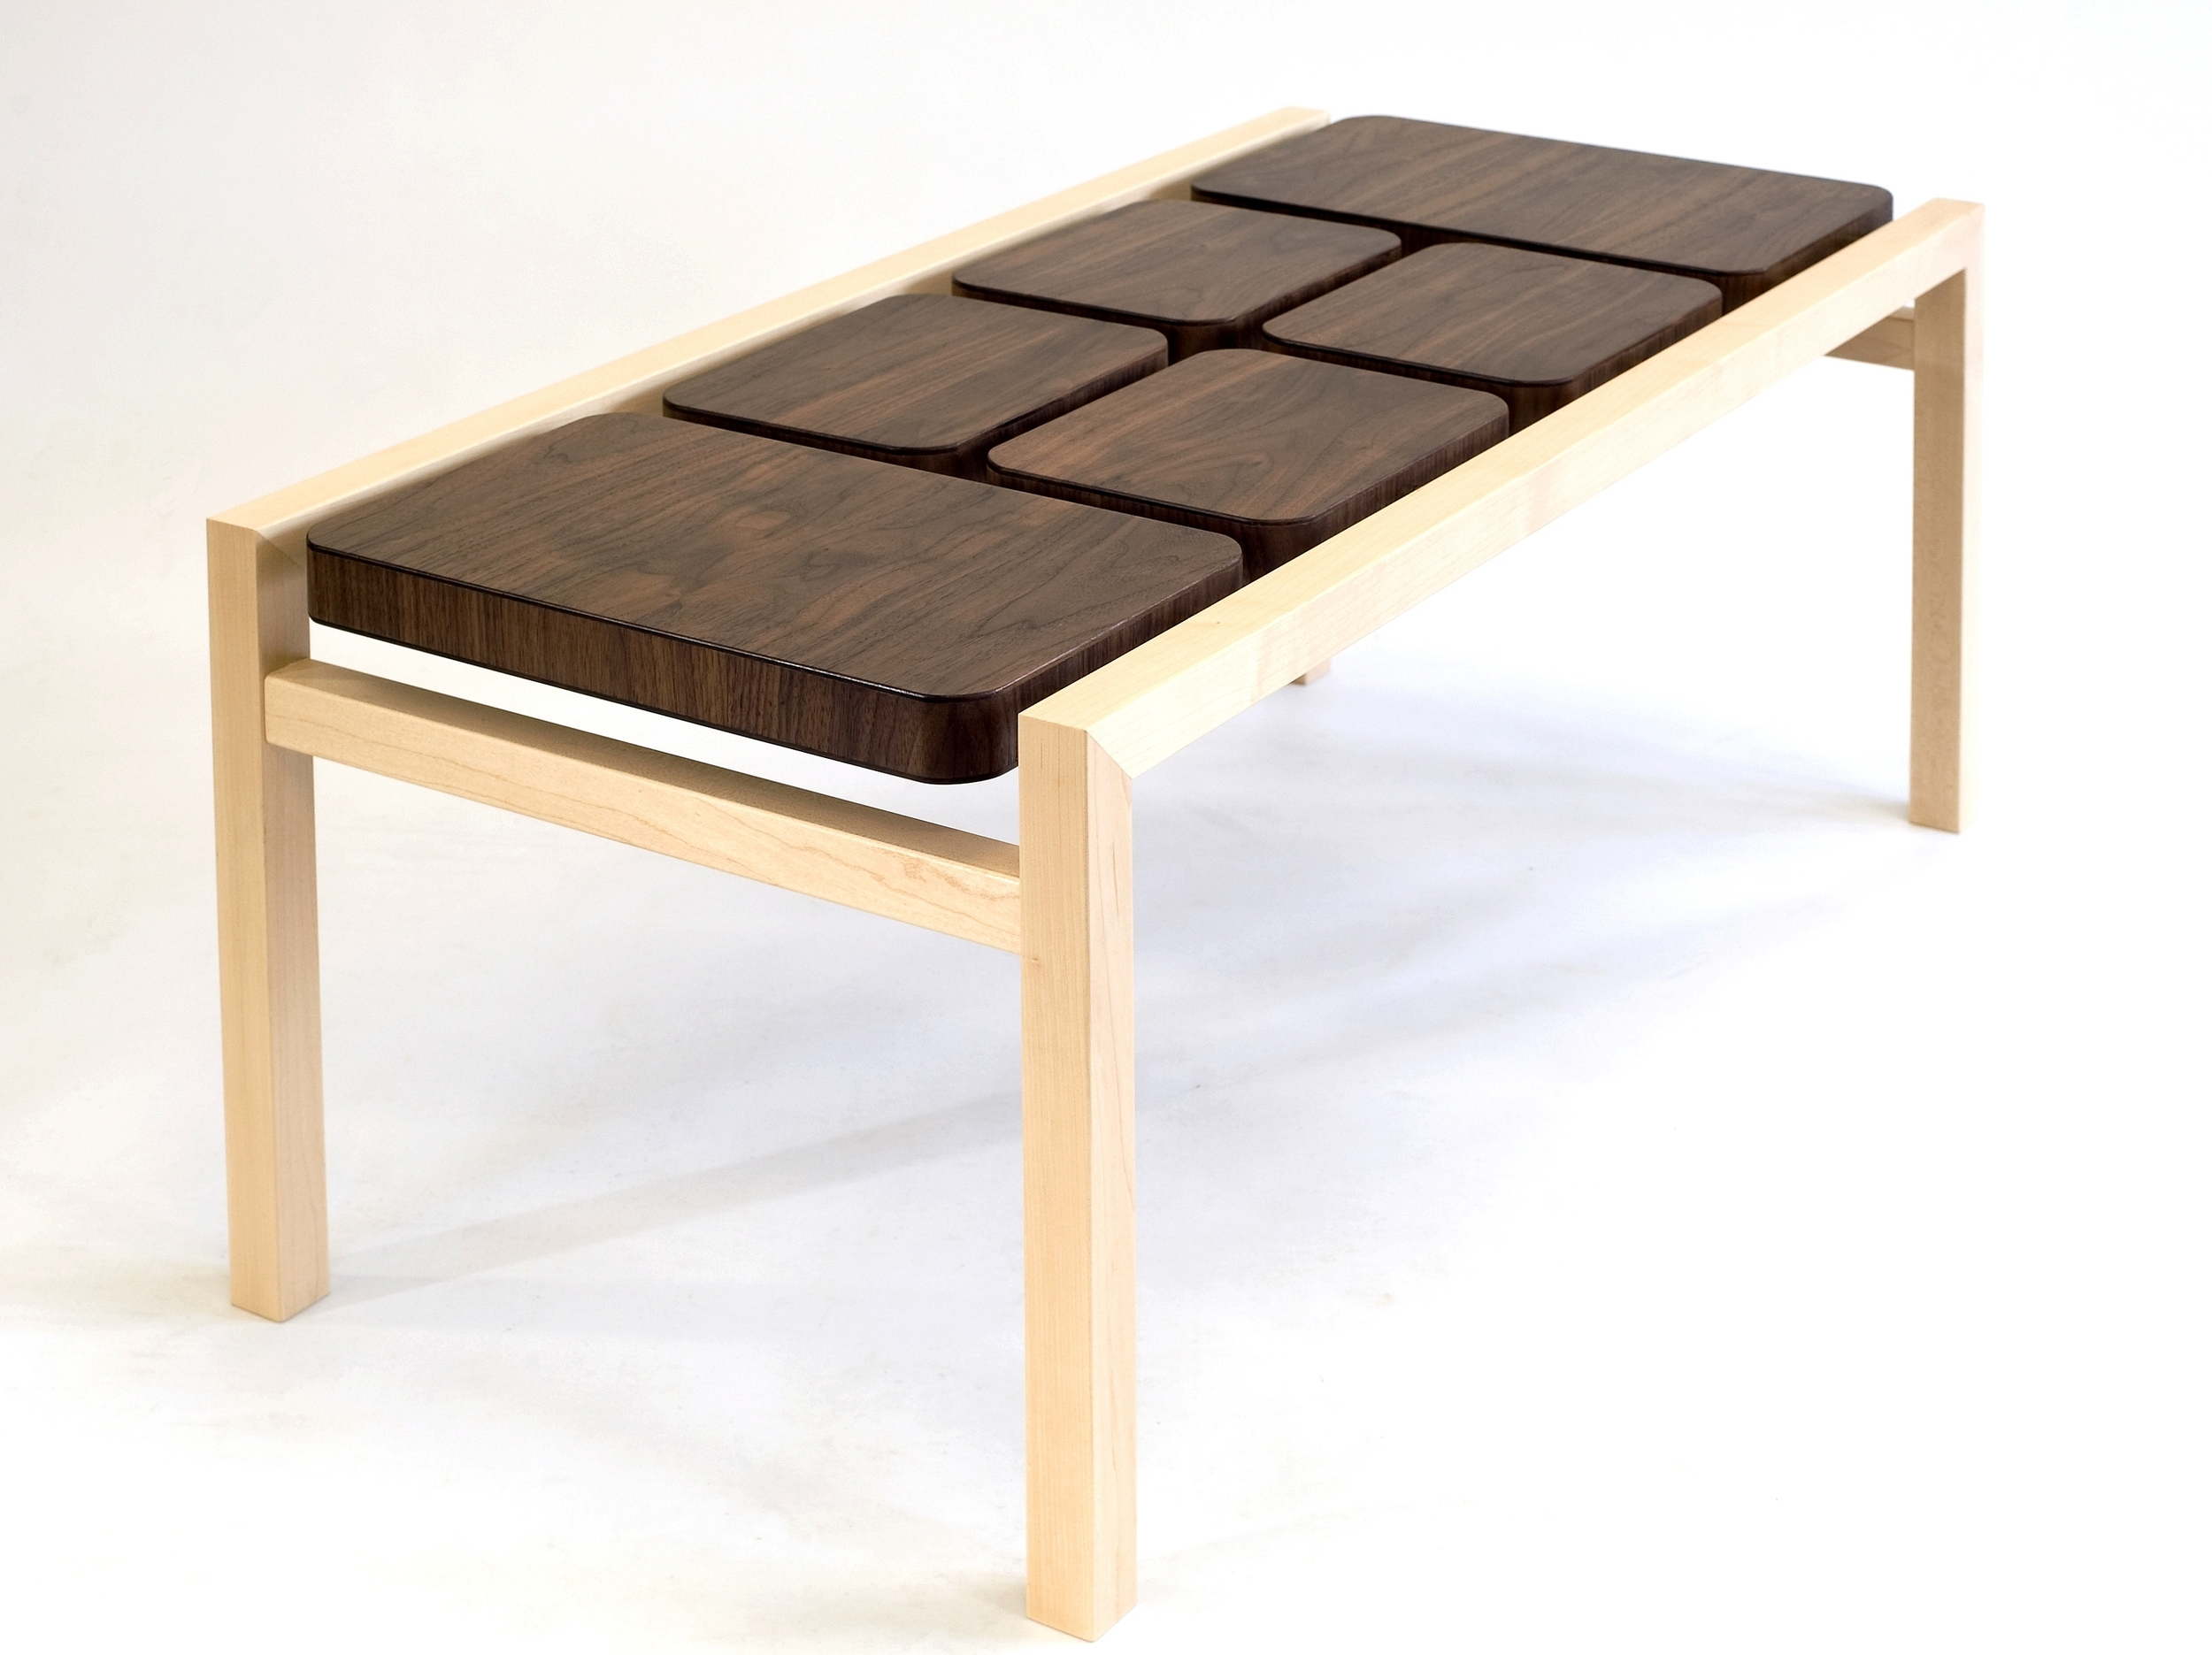 Jason Muteham, Building Crafts College, Fine Woodwork Diploma, 'Islands' Coffee Table 002, HIGHres.jpg